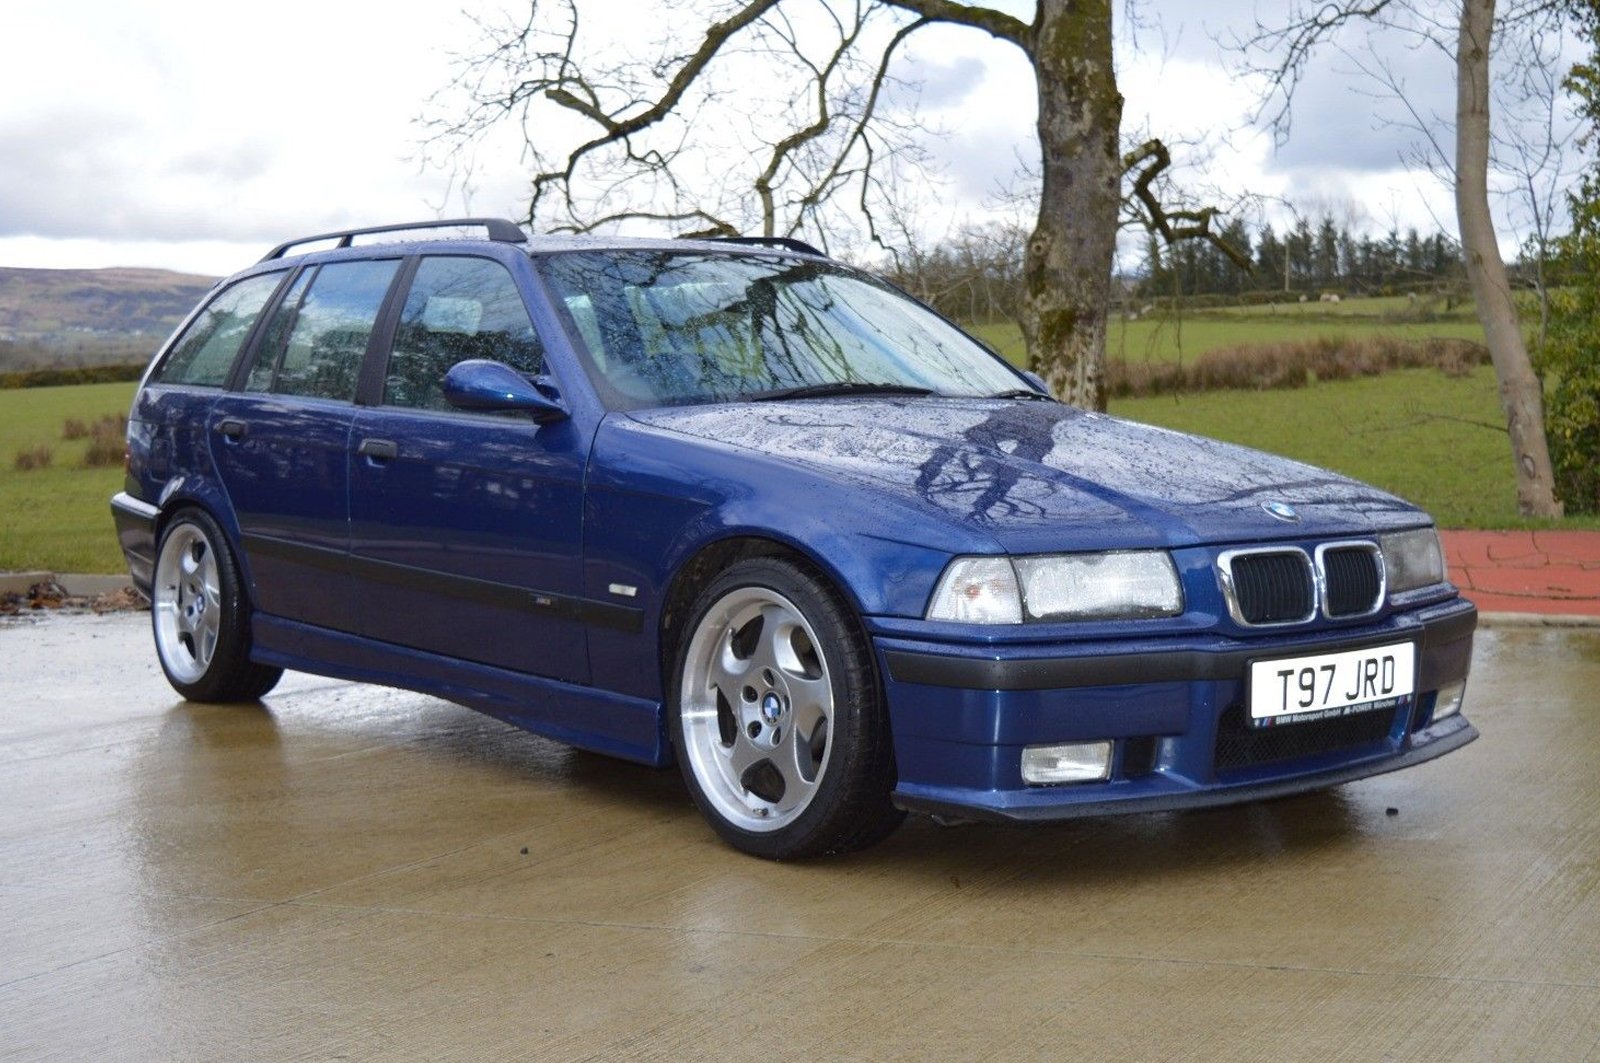 The Coolest Car On Ebay Right Now Bmw E36 M3 Touring Good Shout Media Automotive Marketing Specialist